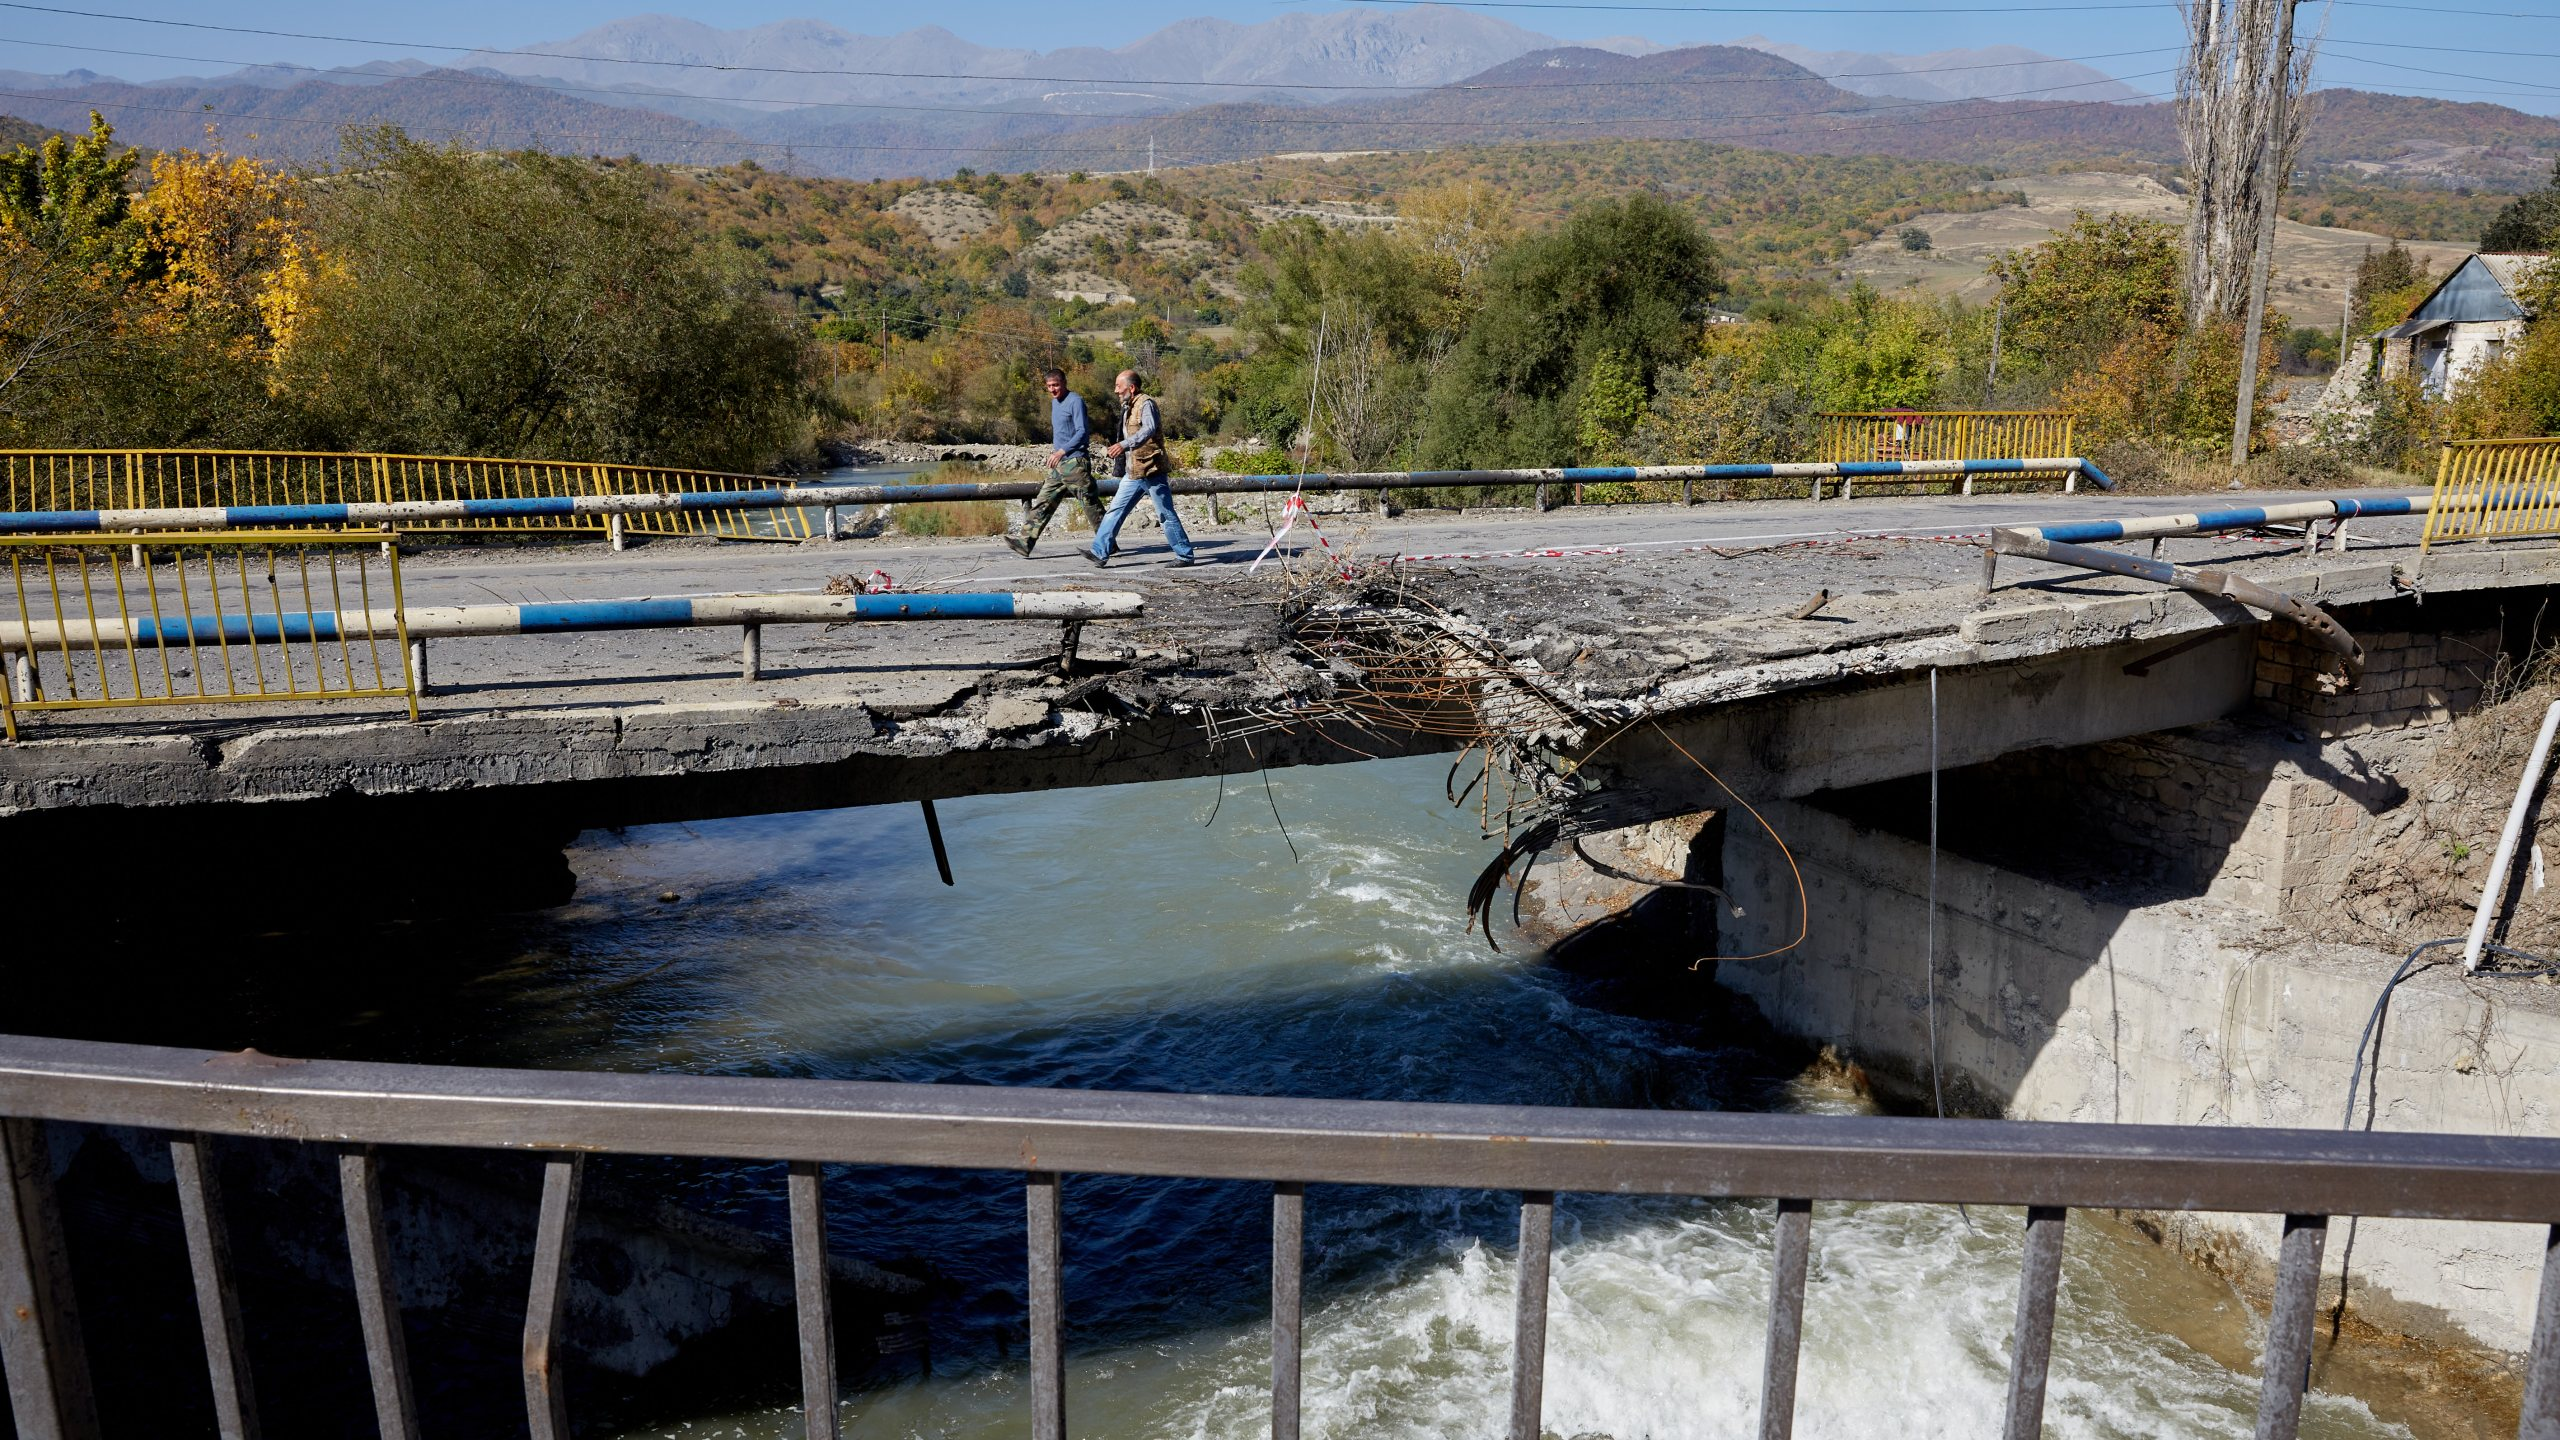 Two men walk across a bridge in Getavan, Nagorno-Karabakh, that was hit by an Azeri missile, on Oct. 14, 2020. (Alex McBride/Getty Images)